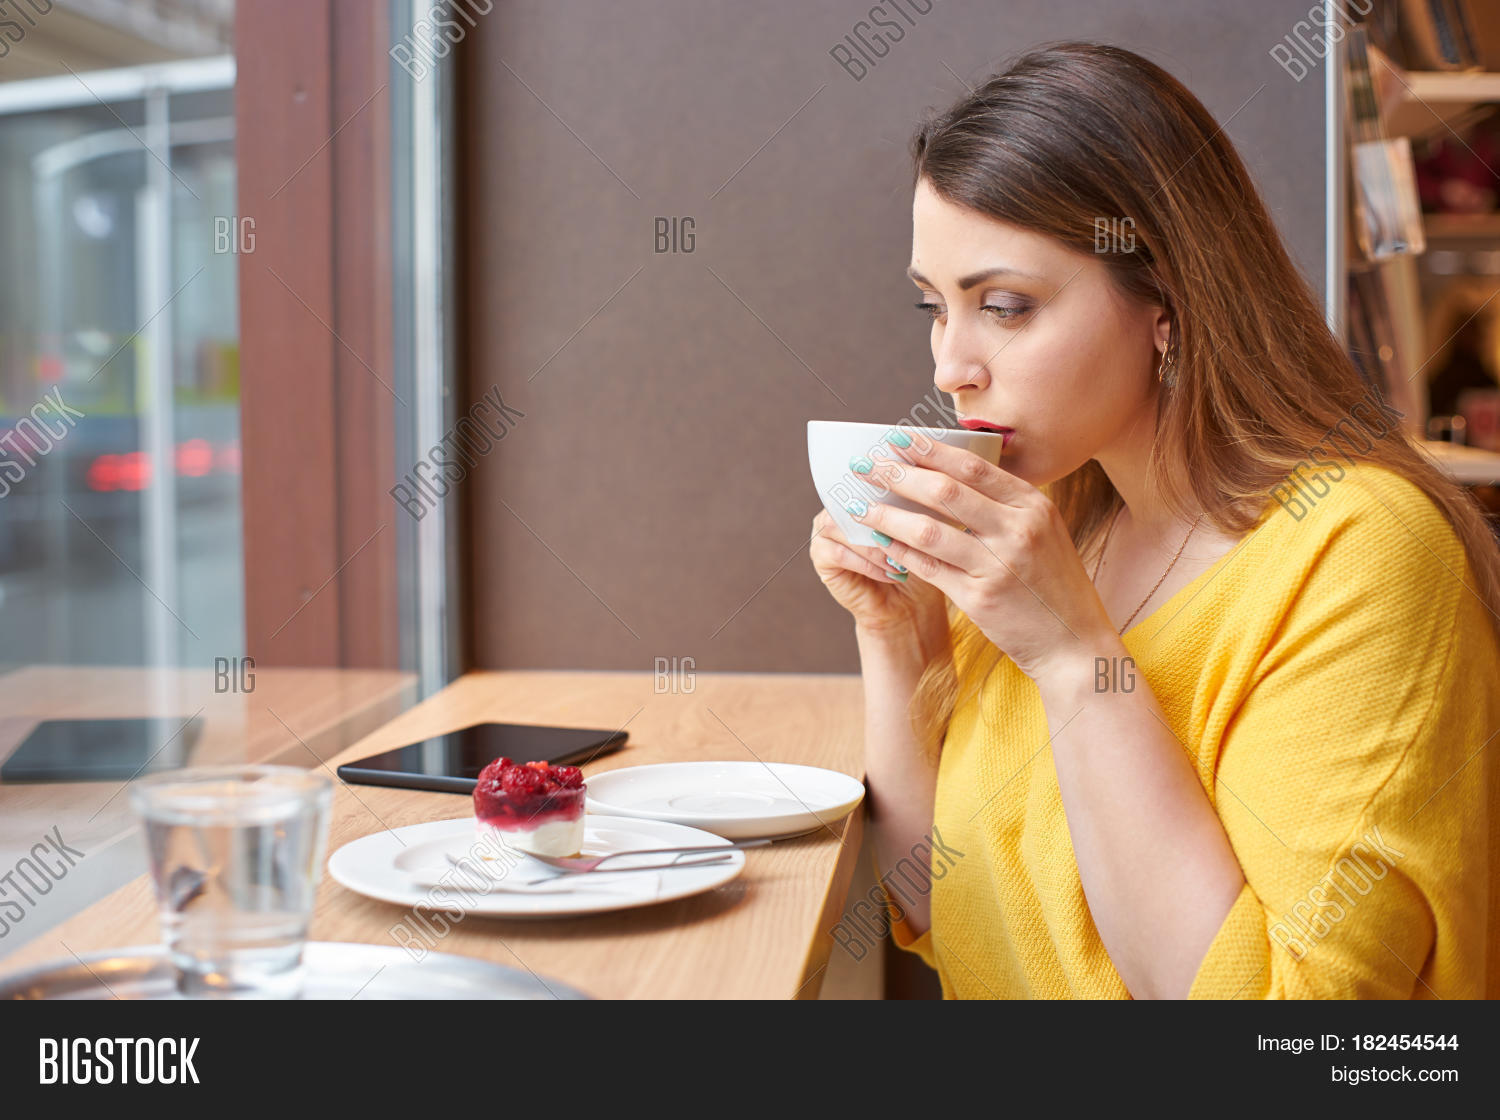 Young Woman Taking Sip Image & Photo (Free Trial) | Bigstock